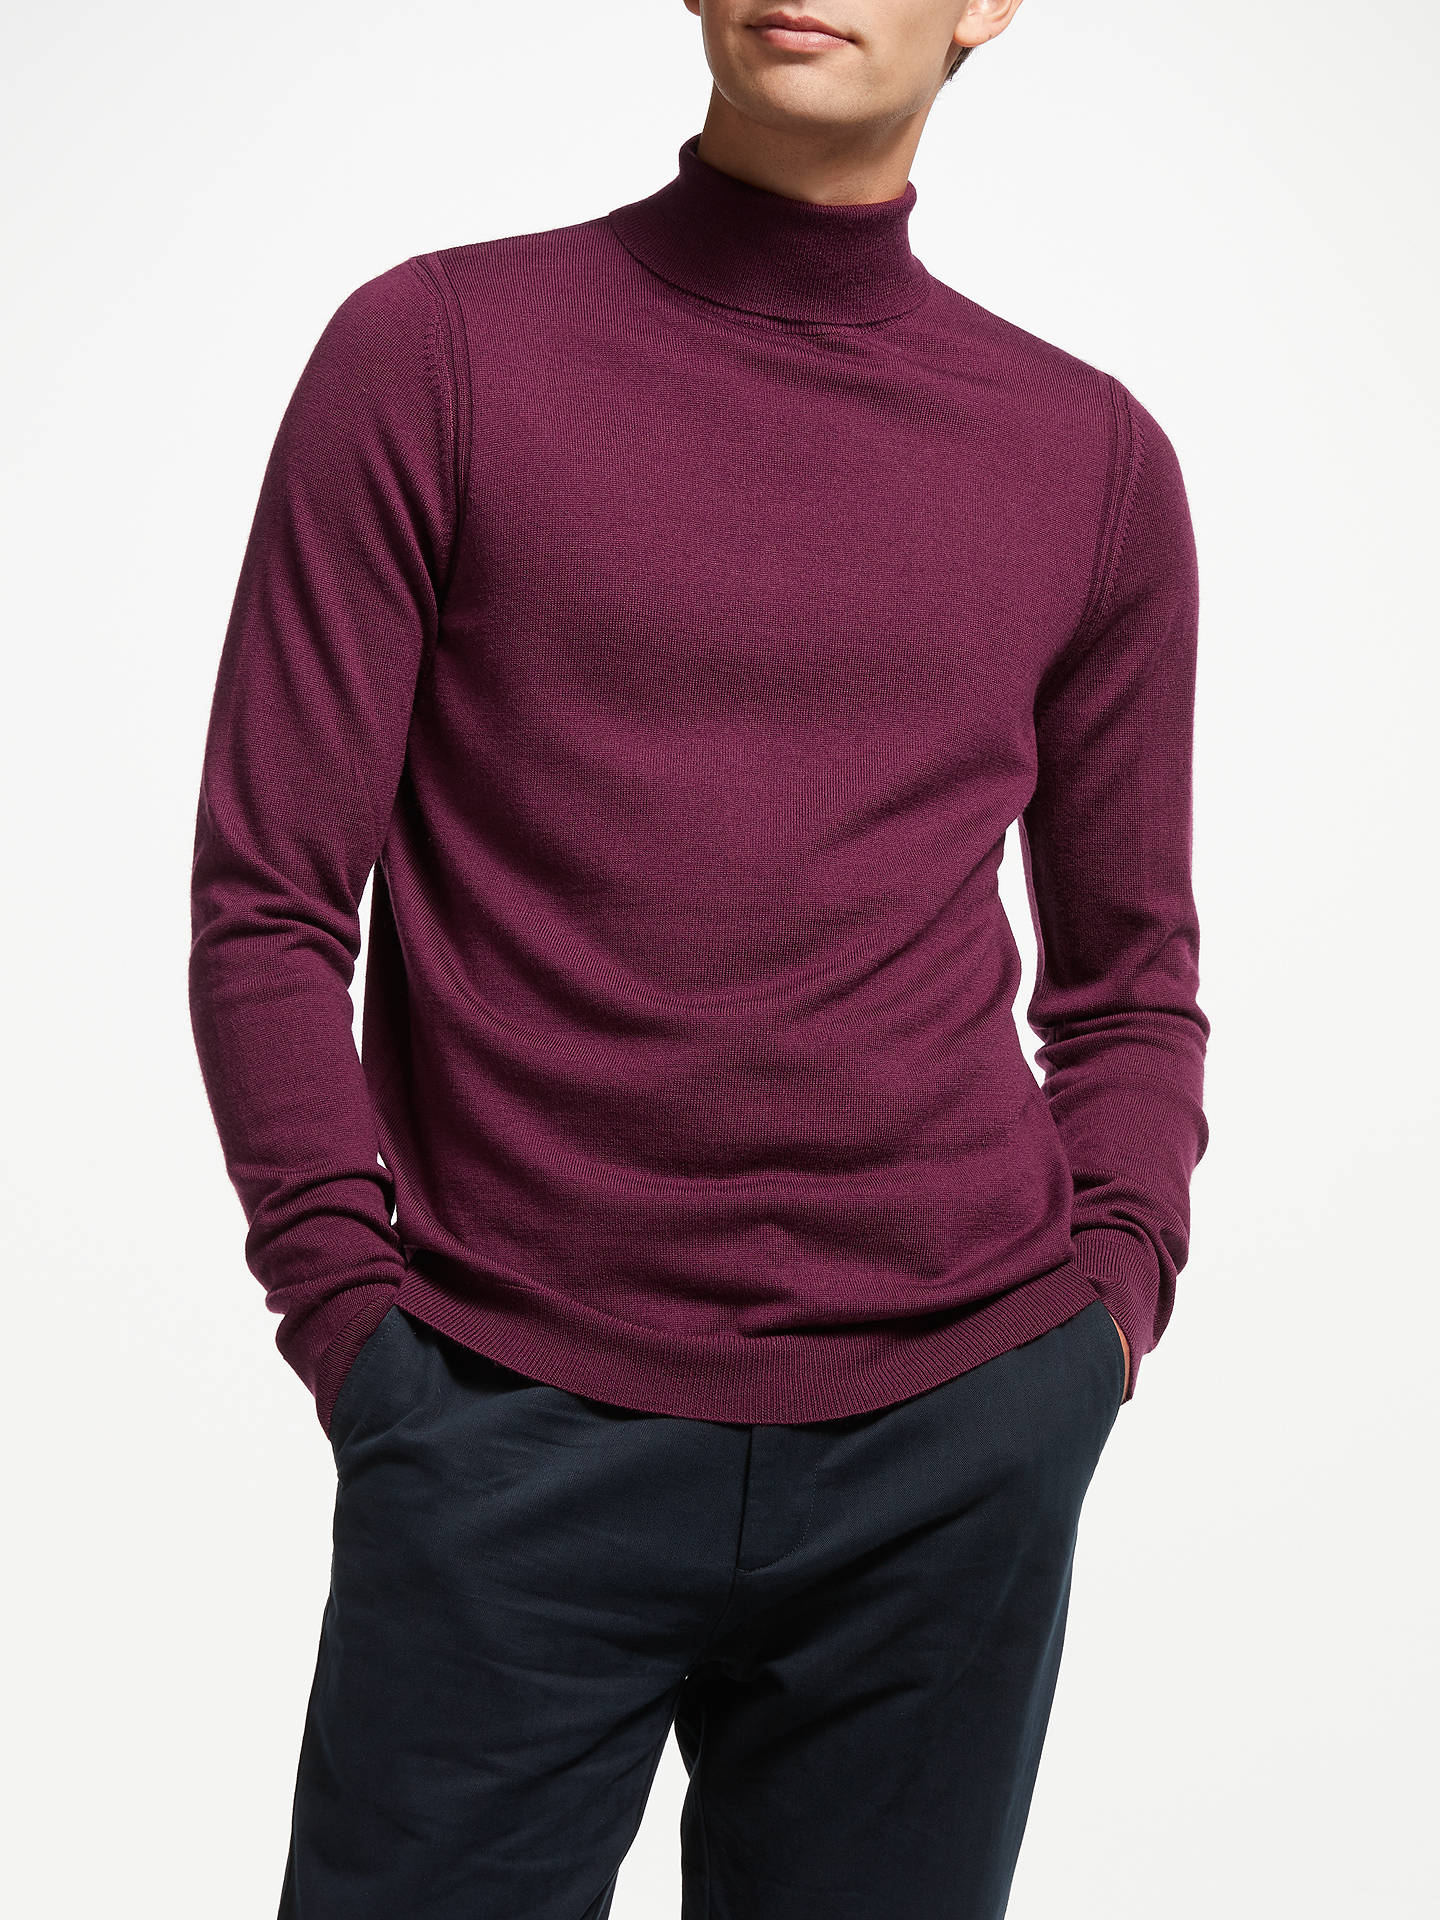 BuyJohn Lewis & Partners Extra Fine Merino Wool Roll Neck Jumper, Wine, M Online at johnlewis.com